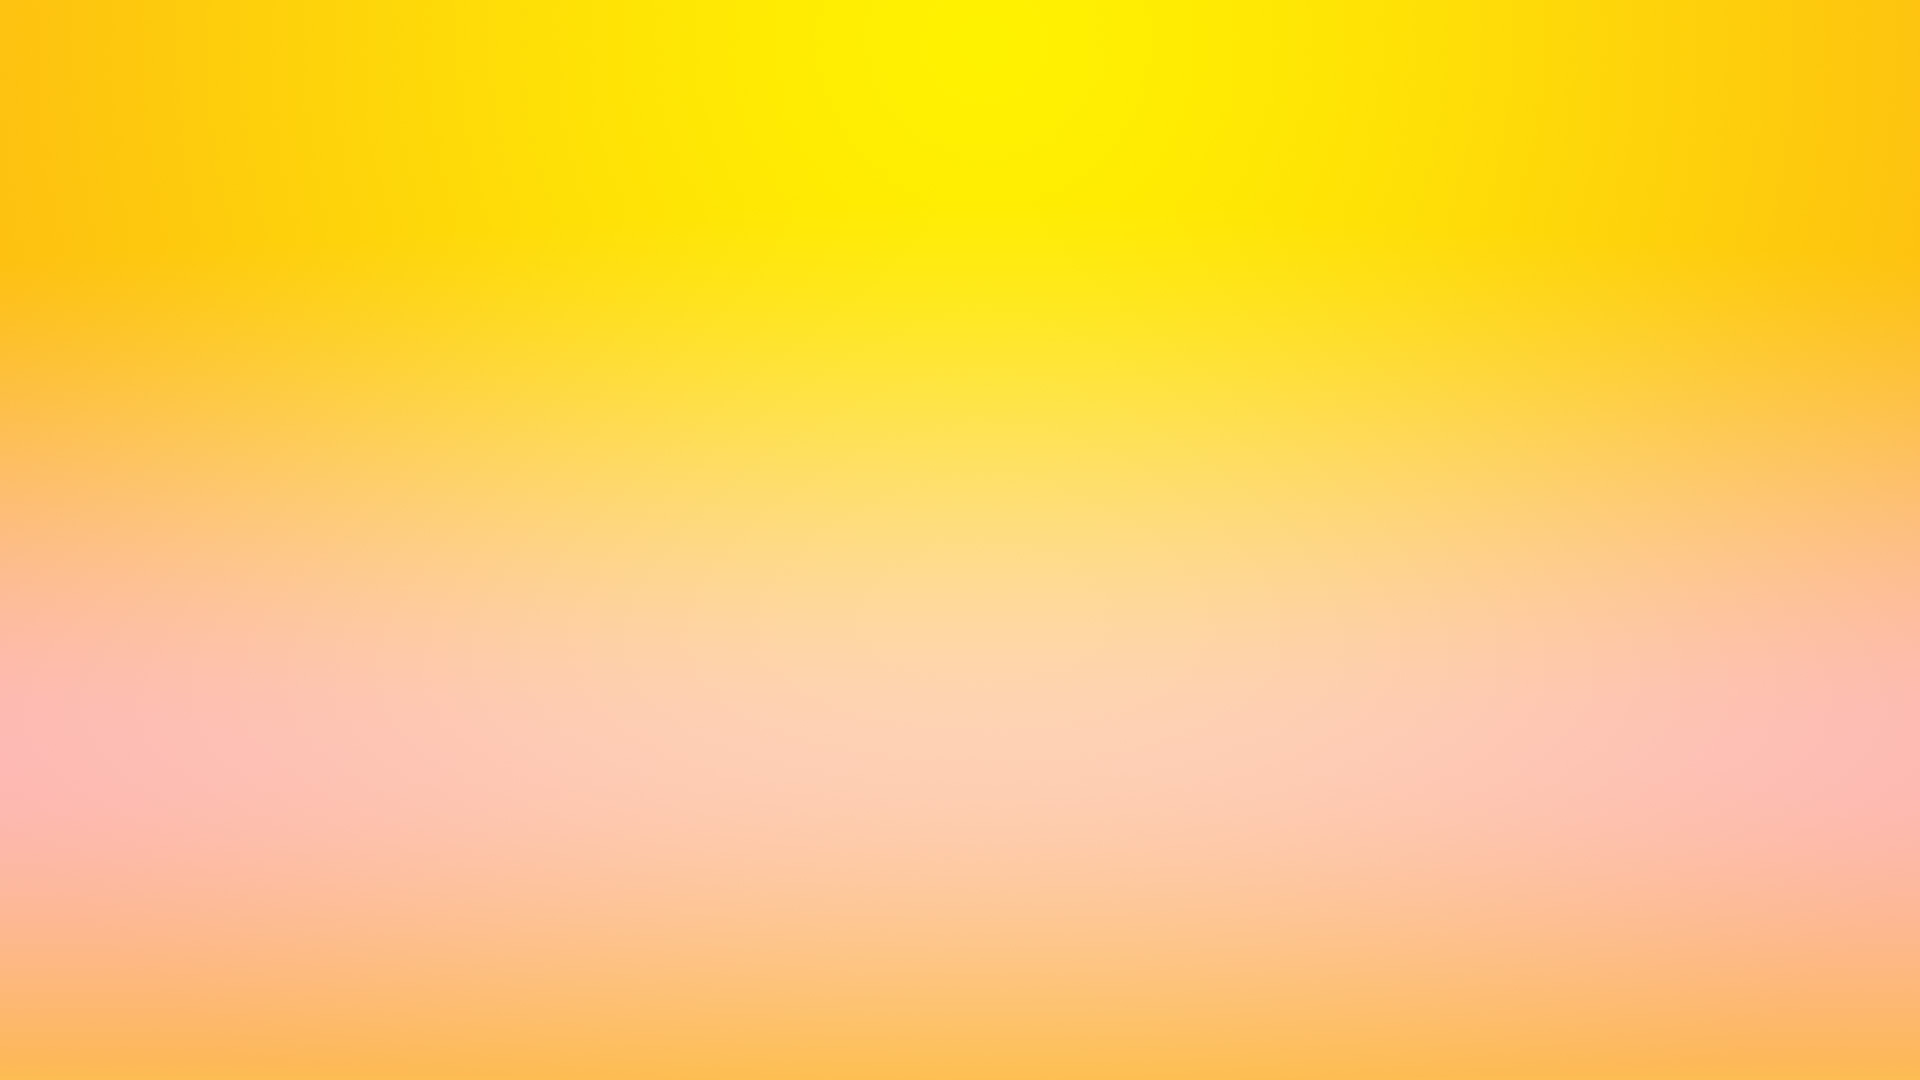 Duotone-yellow-Presentation-Gradient-Background